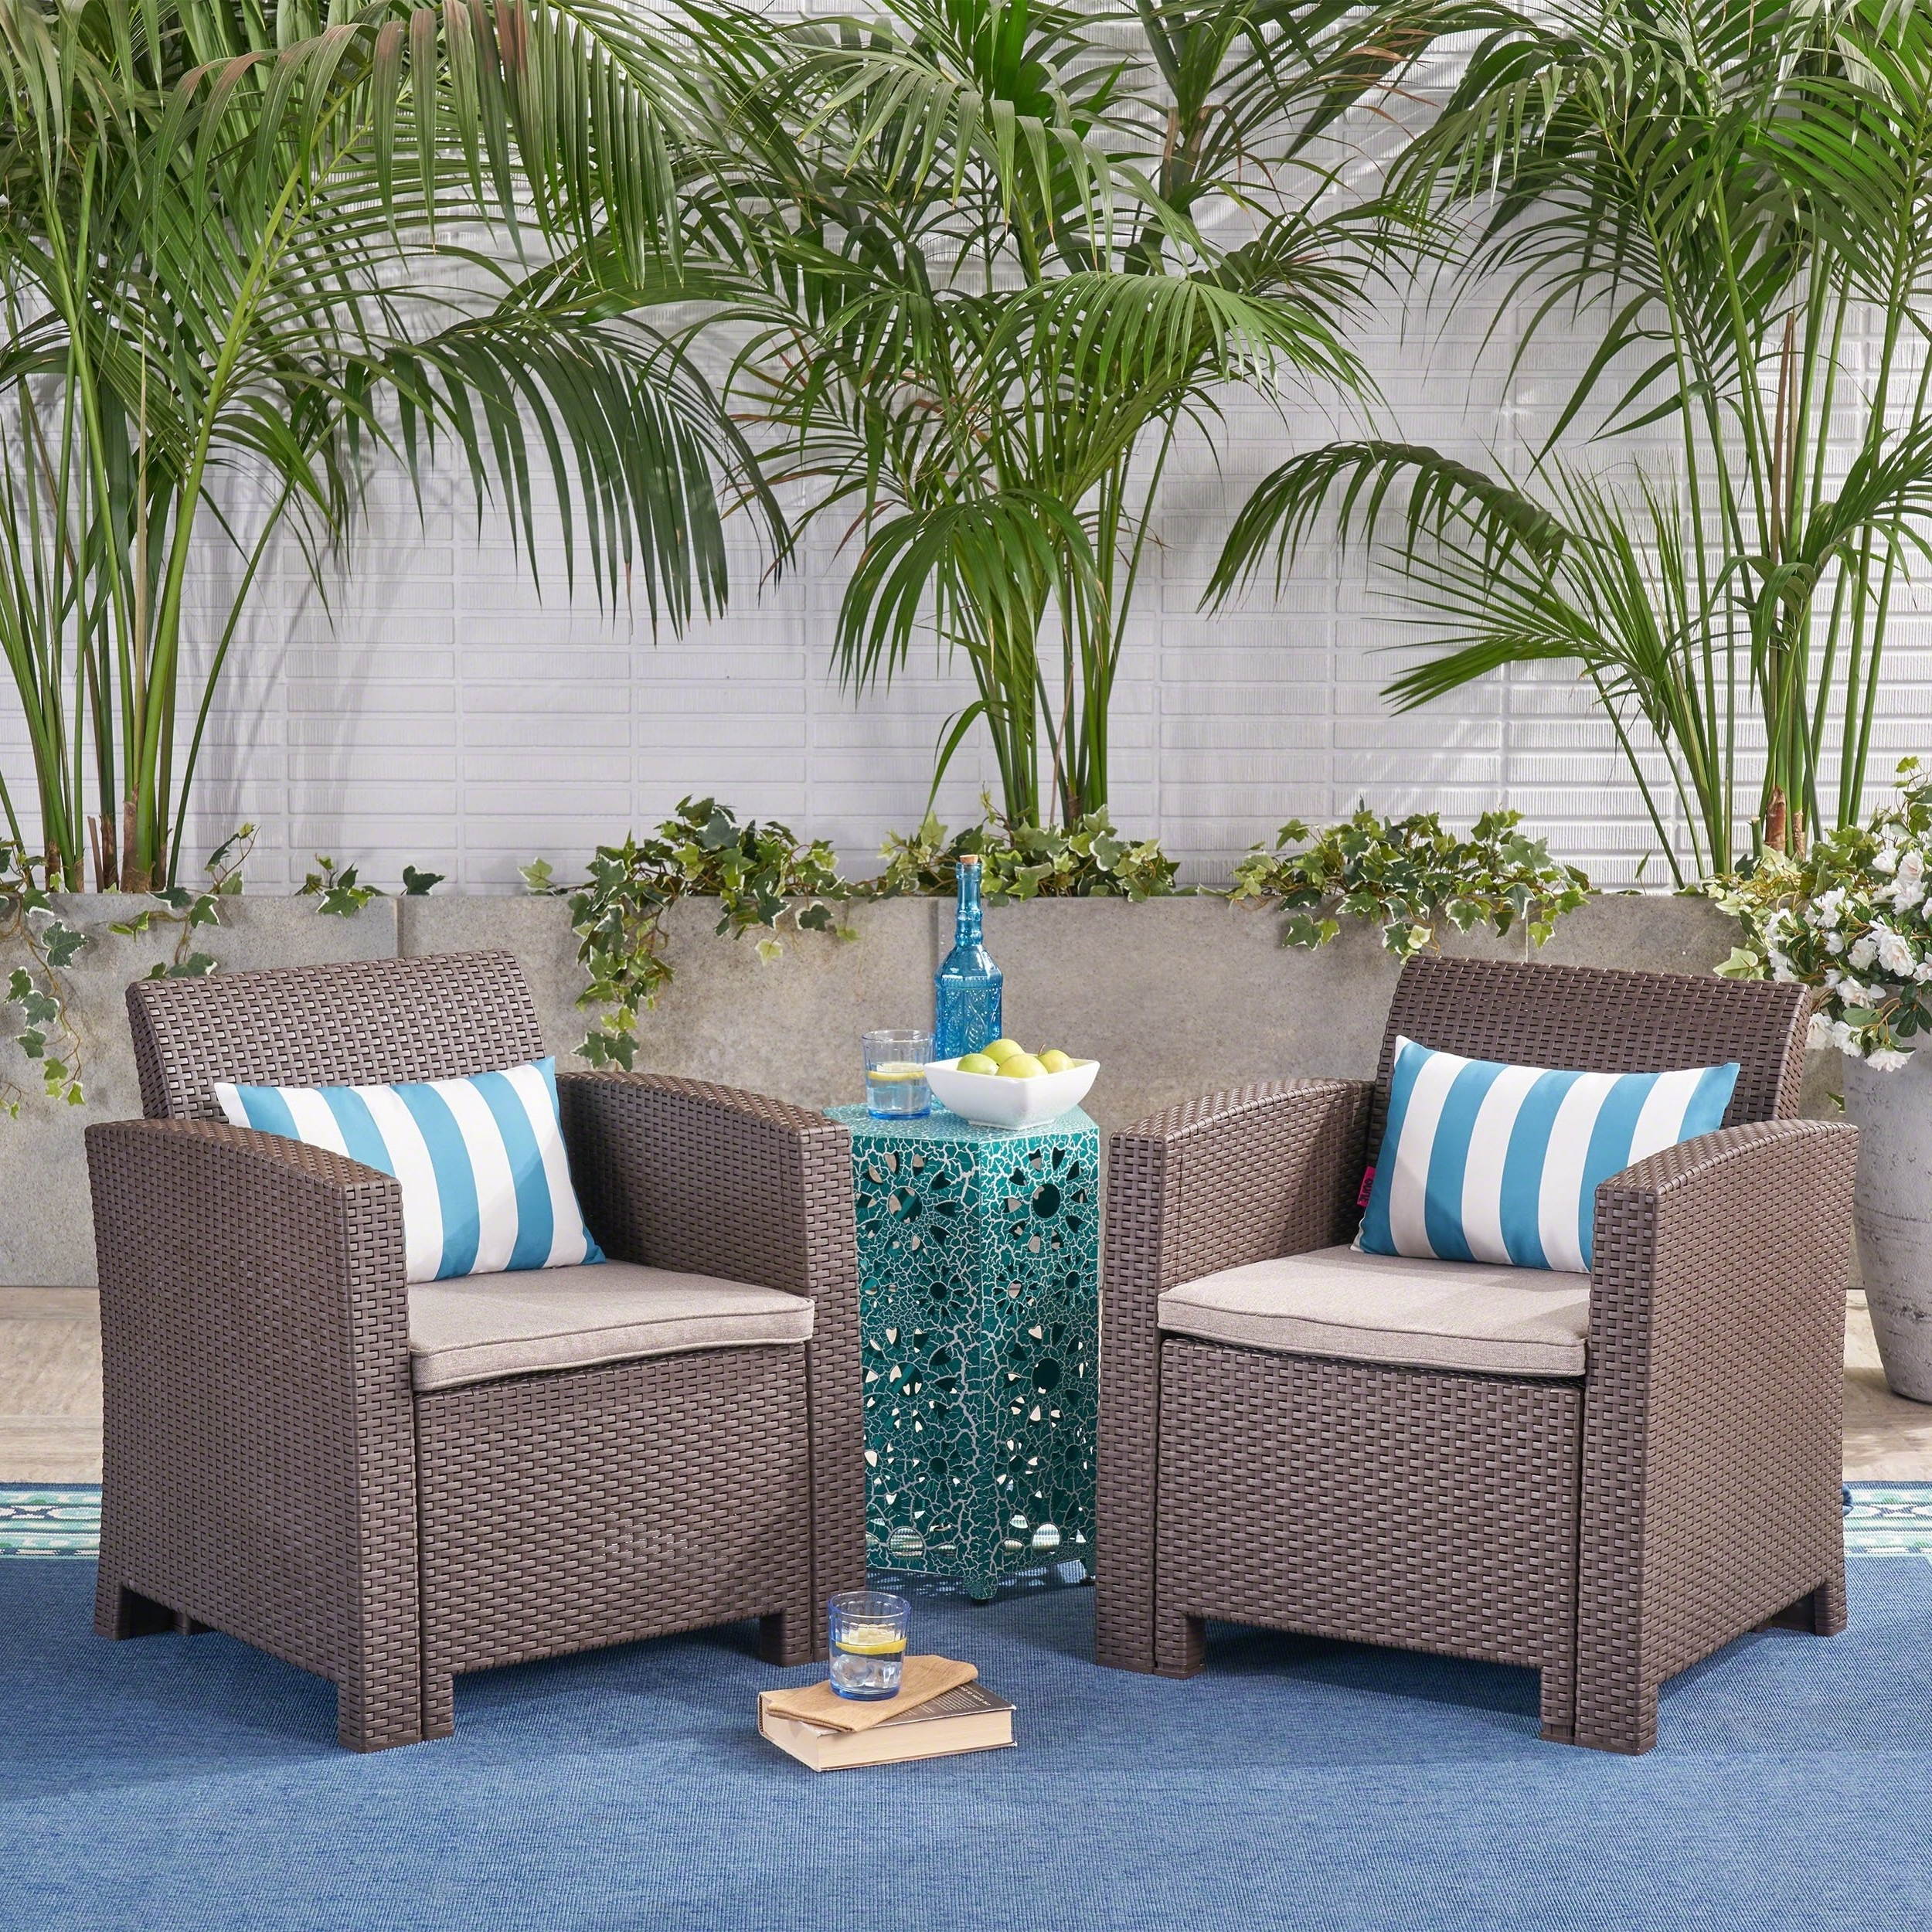 Well Liked Buy 2 Outdoor Sofas, Chairs & Sectionals Online At Overstock With Regard To Alder Grande Ii Swivel Chairs (View 16 of 20)